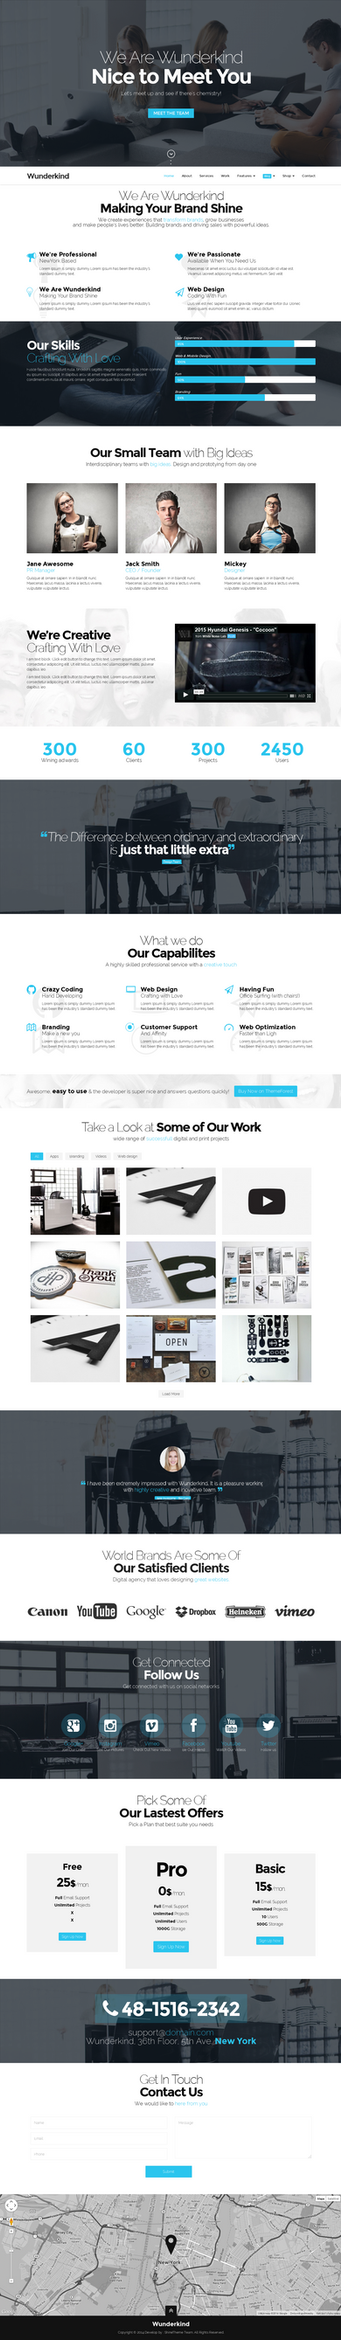 Wunderkind - One Page Parallax WordPress Theme by wpthemes